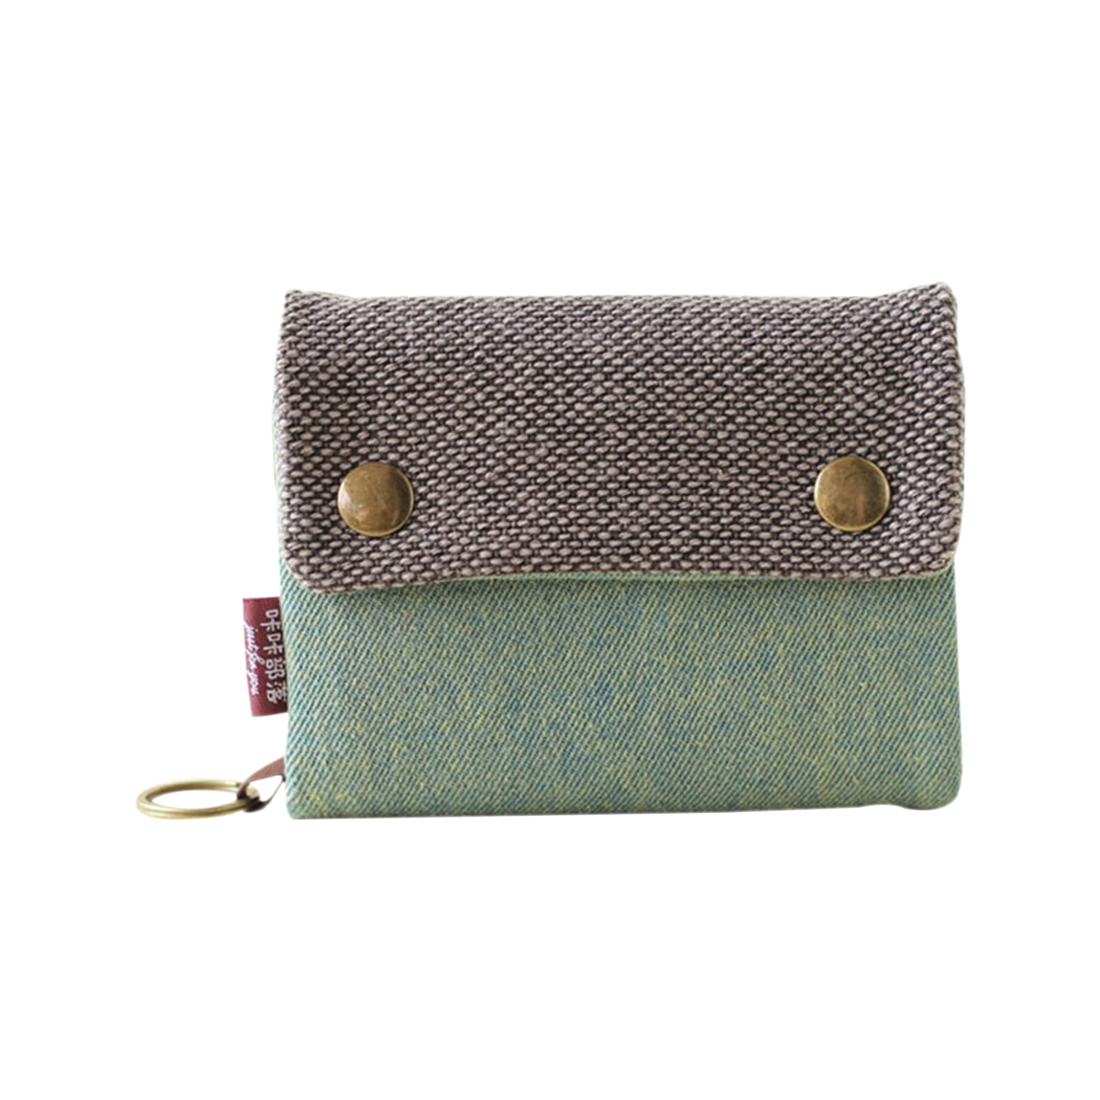 Unisex Men Women's Three Layer Folded Manual Canvas Wallet Bag With Multi Card Holder,Boy Girl's Multifunction Coin Purse Green g favor vintage waterproof oil wax canvas clutch bag men long wallet card holder dollar purse coin multifunction business bag